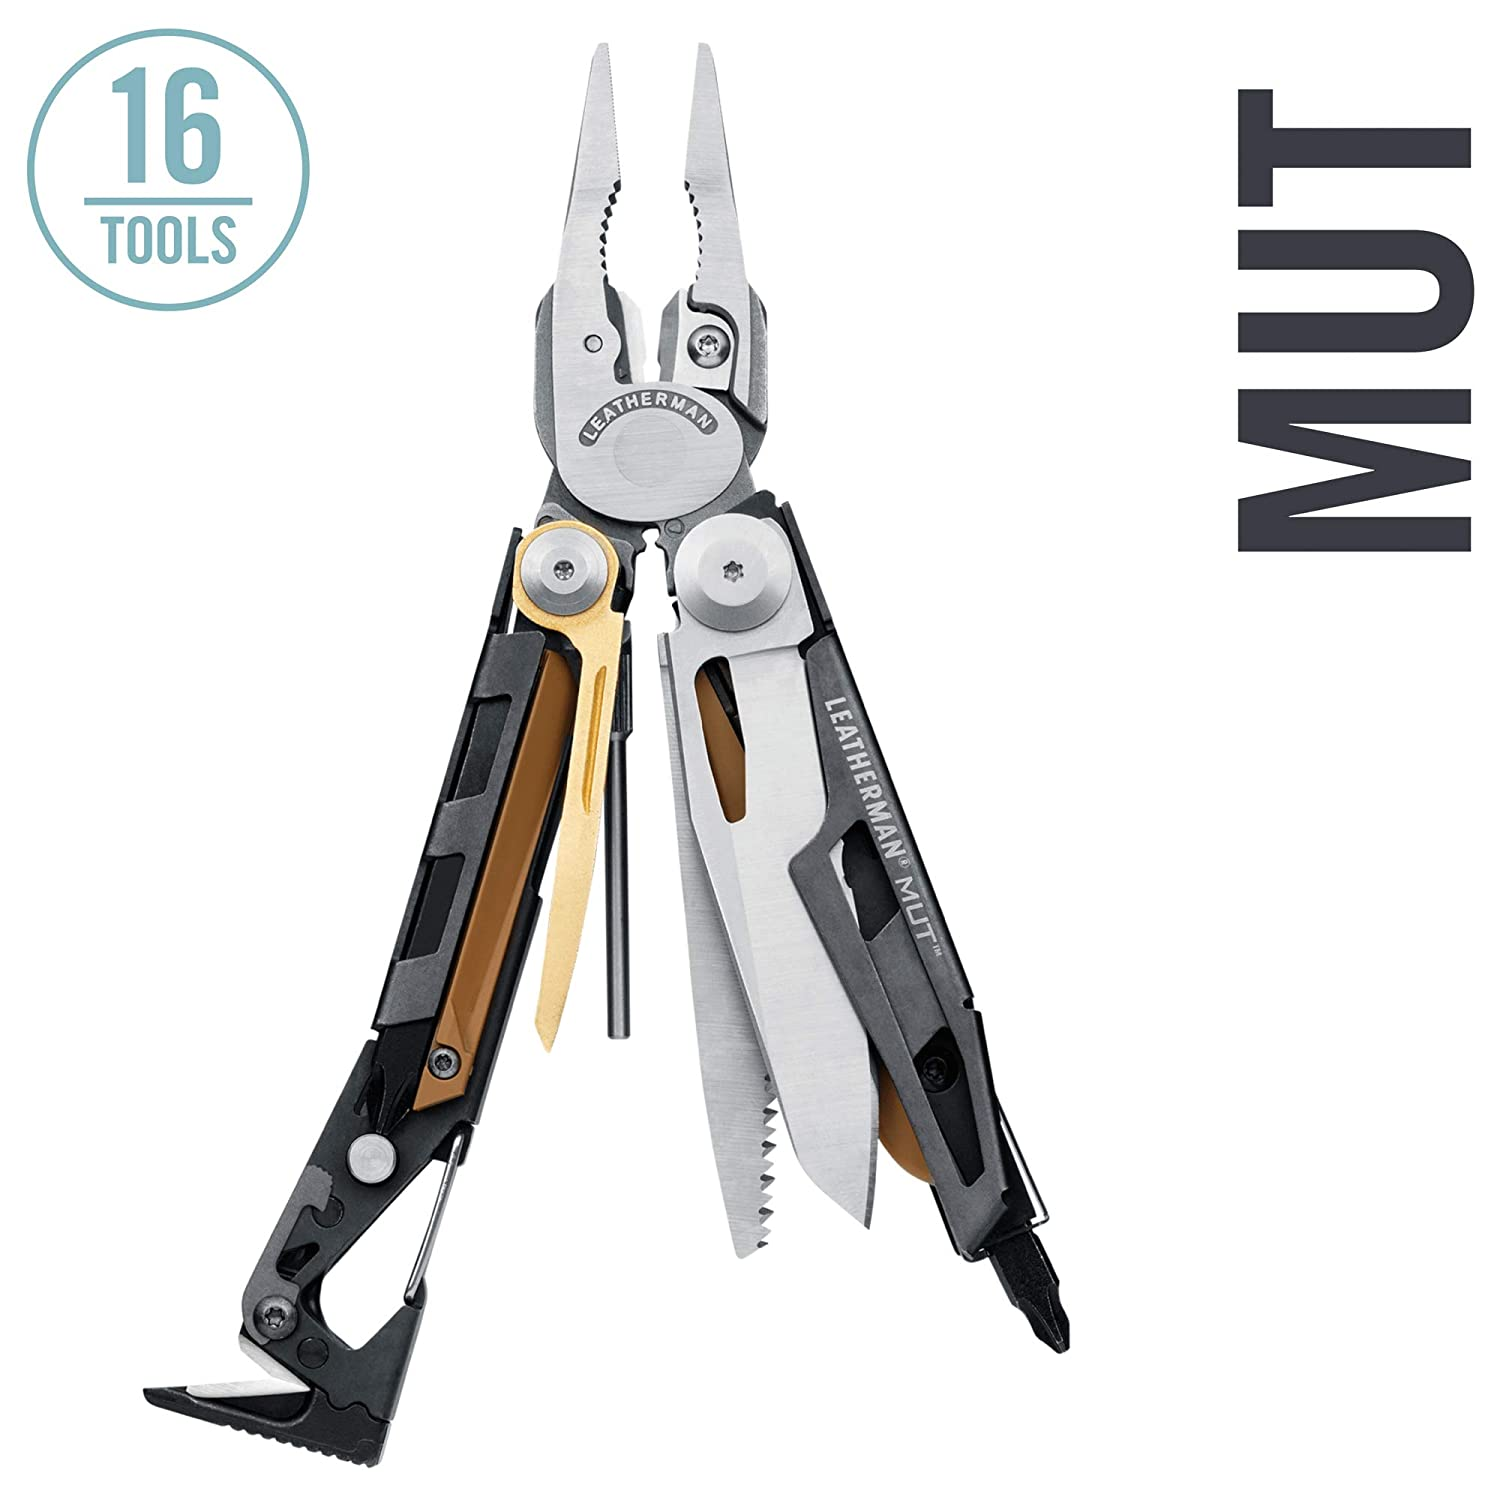 LEATHERMAN MUT Multitool with Premium Replaceable Wire Cutters and Firearm Tools Black with MOLLE Black Sheath